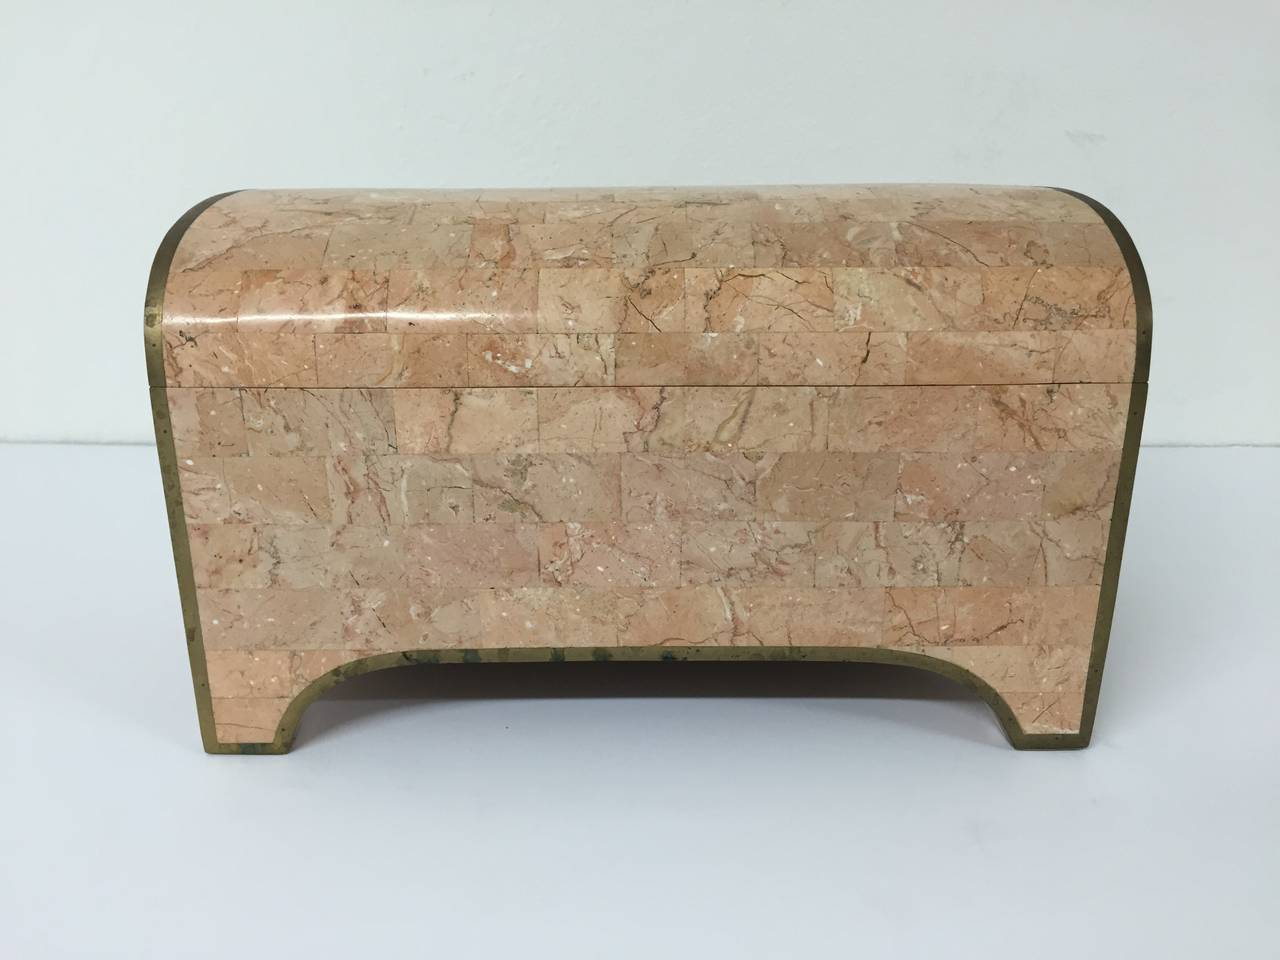 Pink tessellated marble and patinated brass jewelry box by Maitland-Smith.